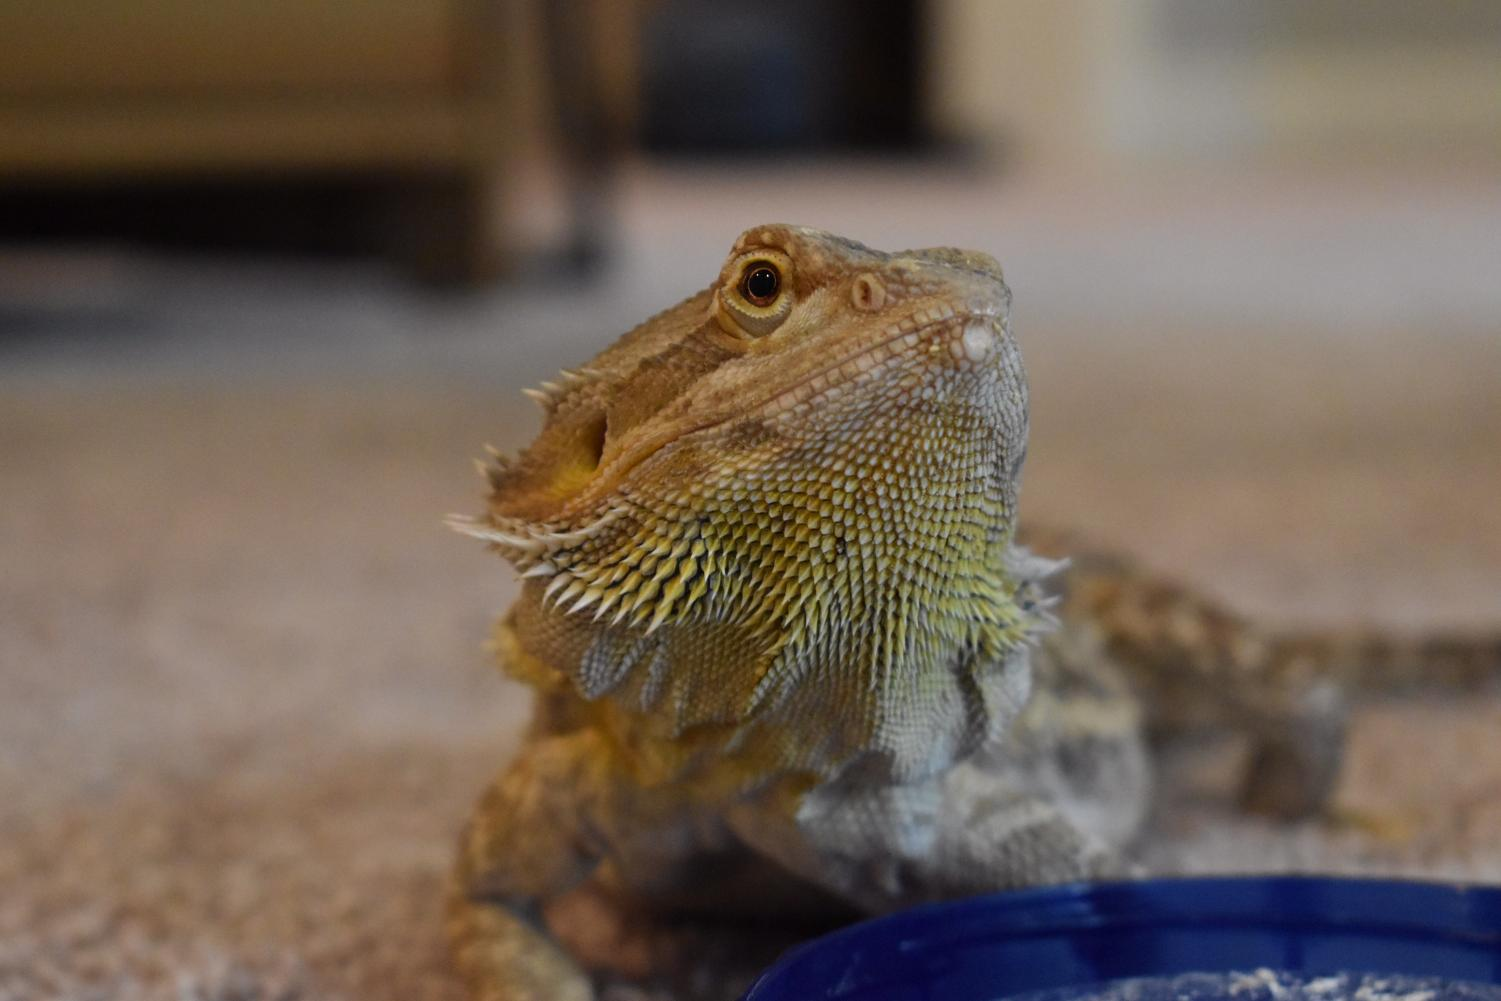 Nubz the Bearded Dragon